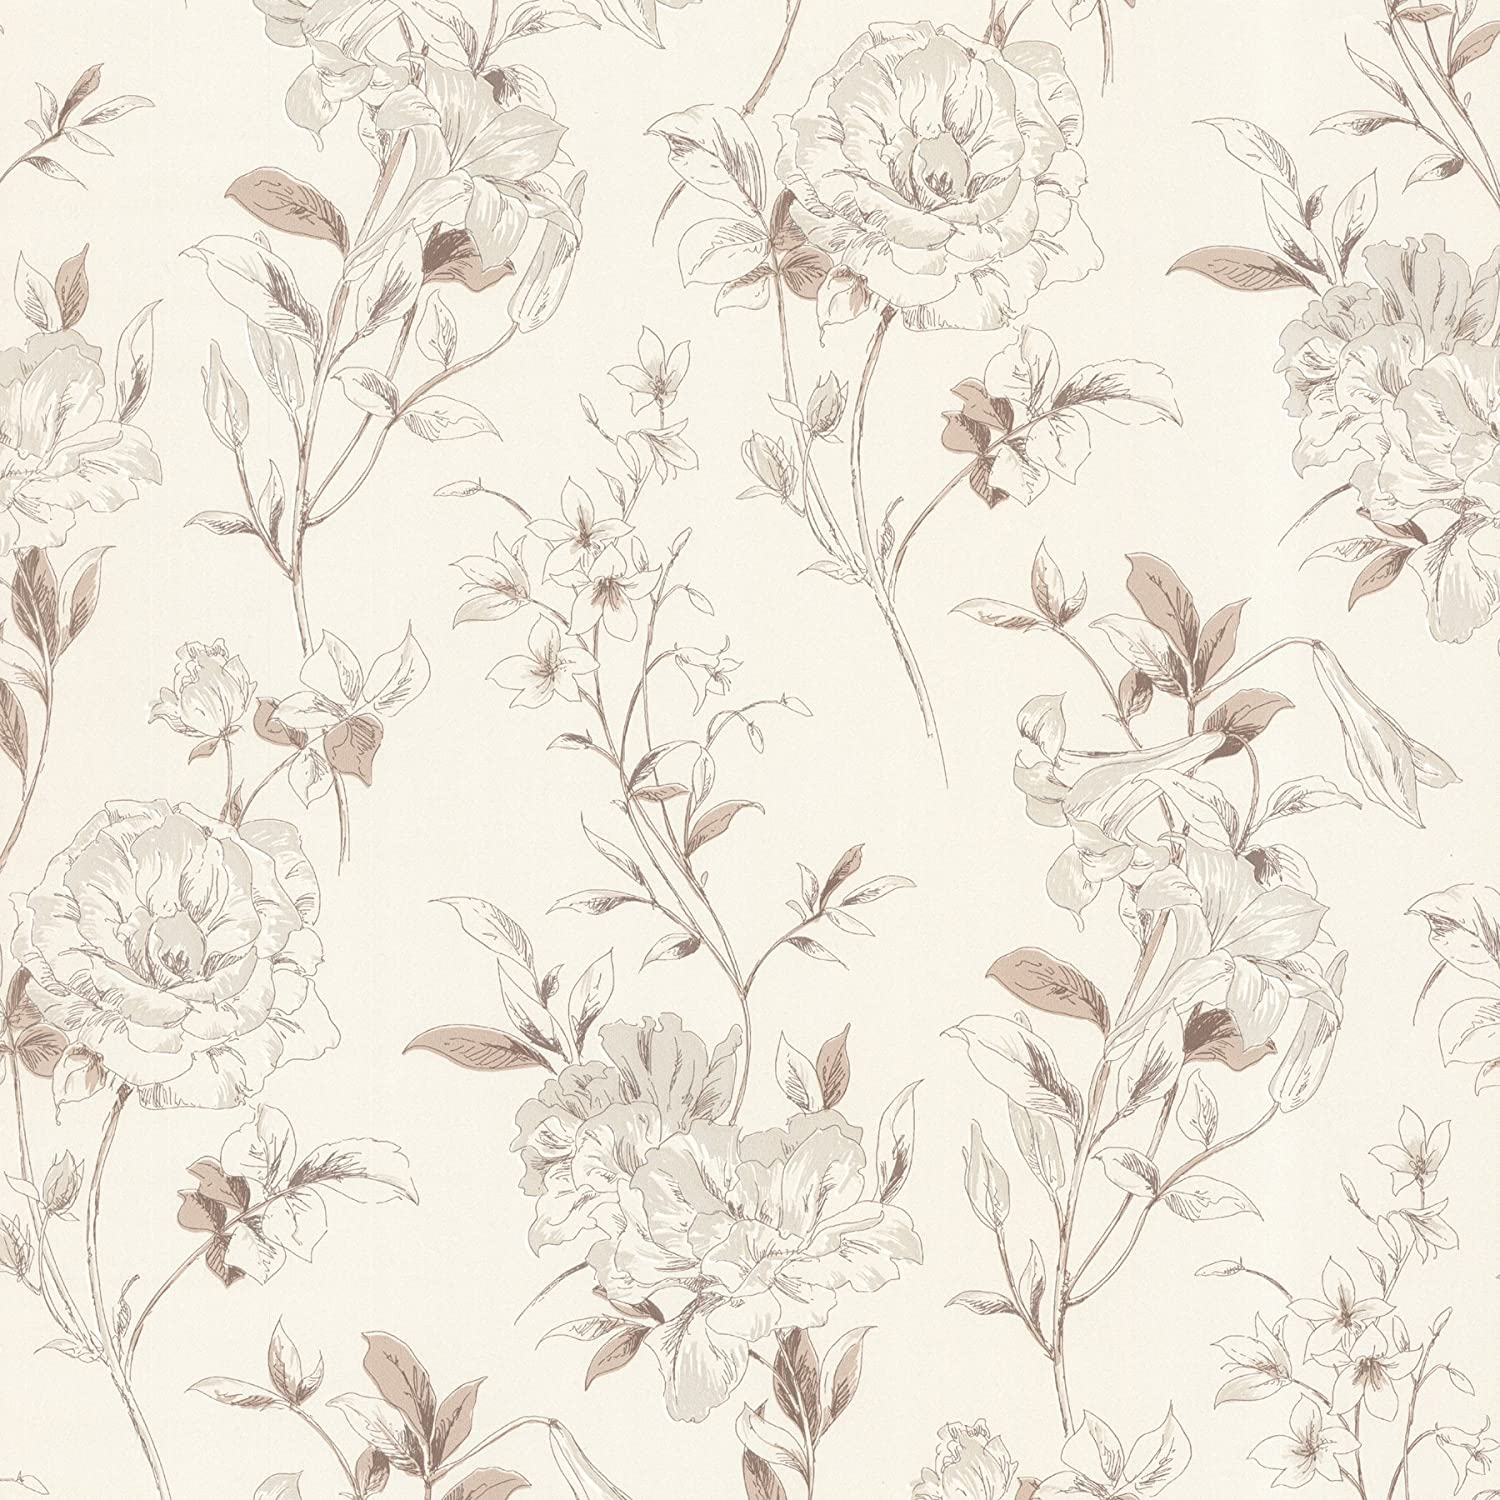 Beacon House 450 67372 Jolie Beige Floral Toss Wallpaper Beige